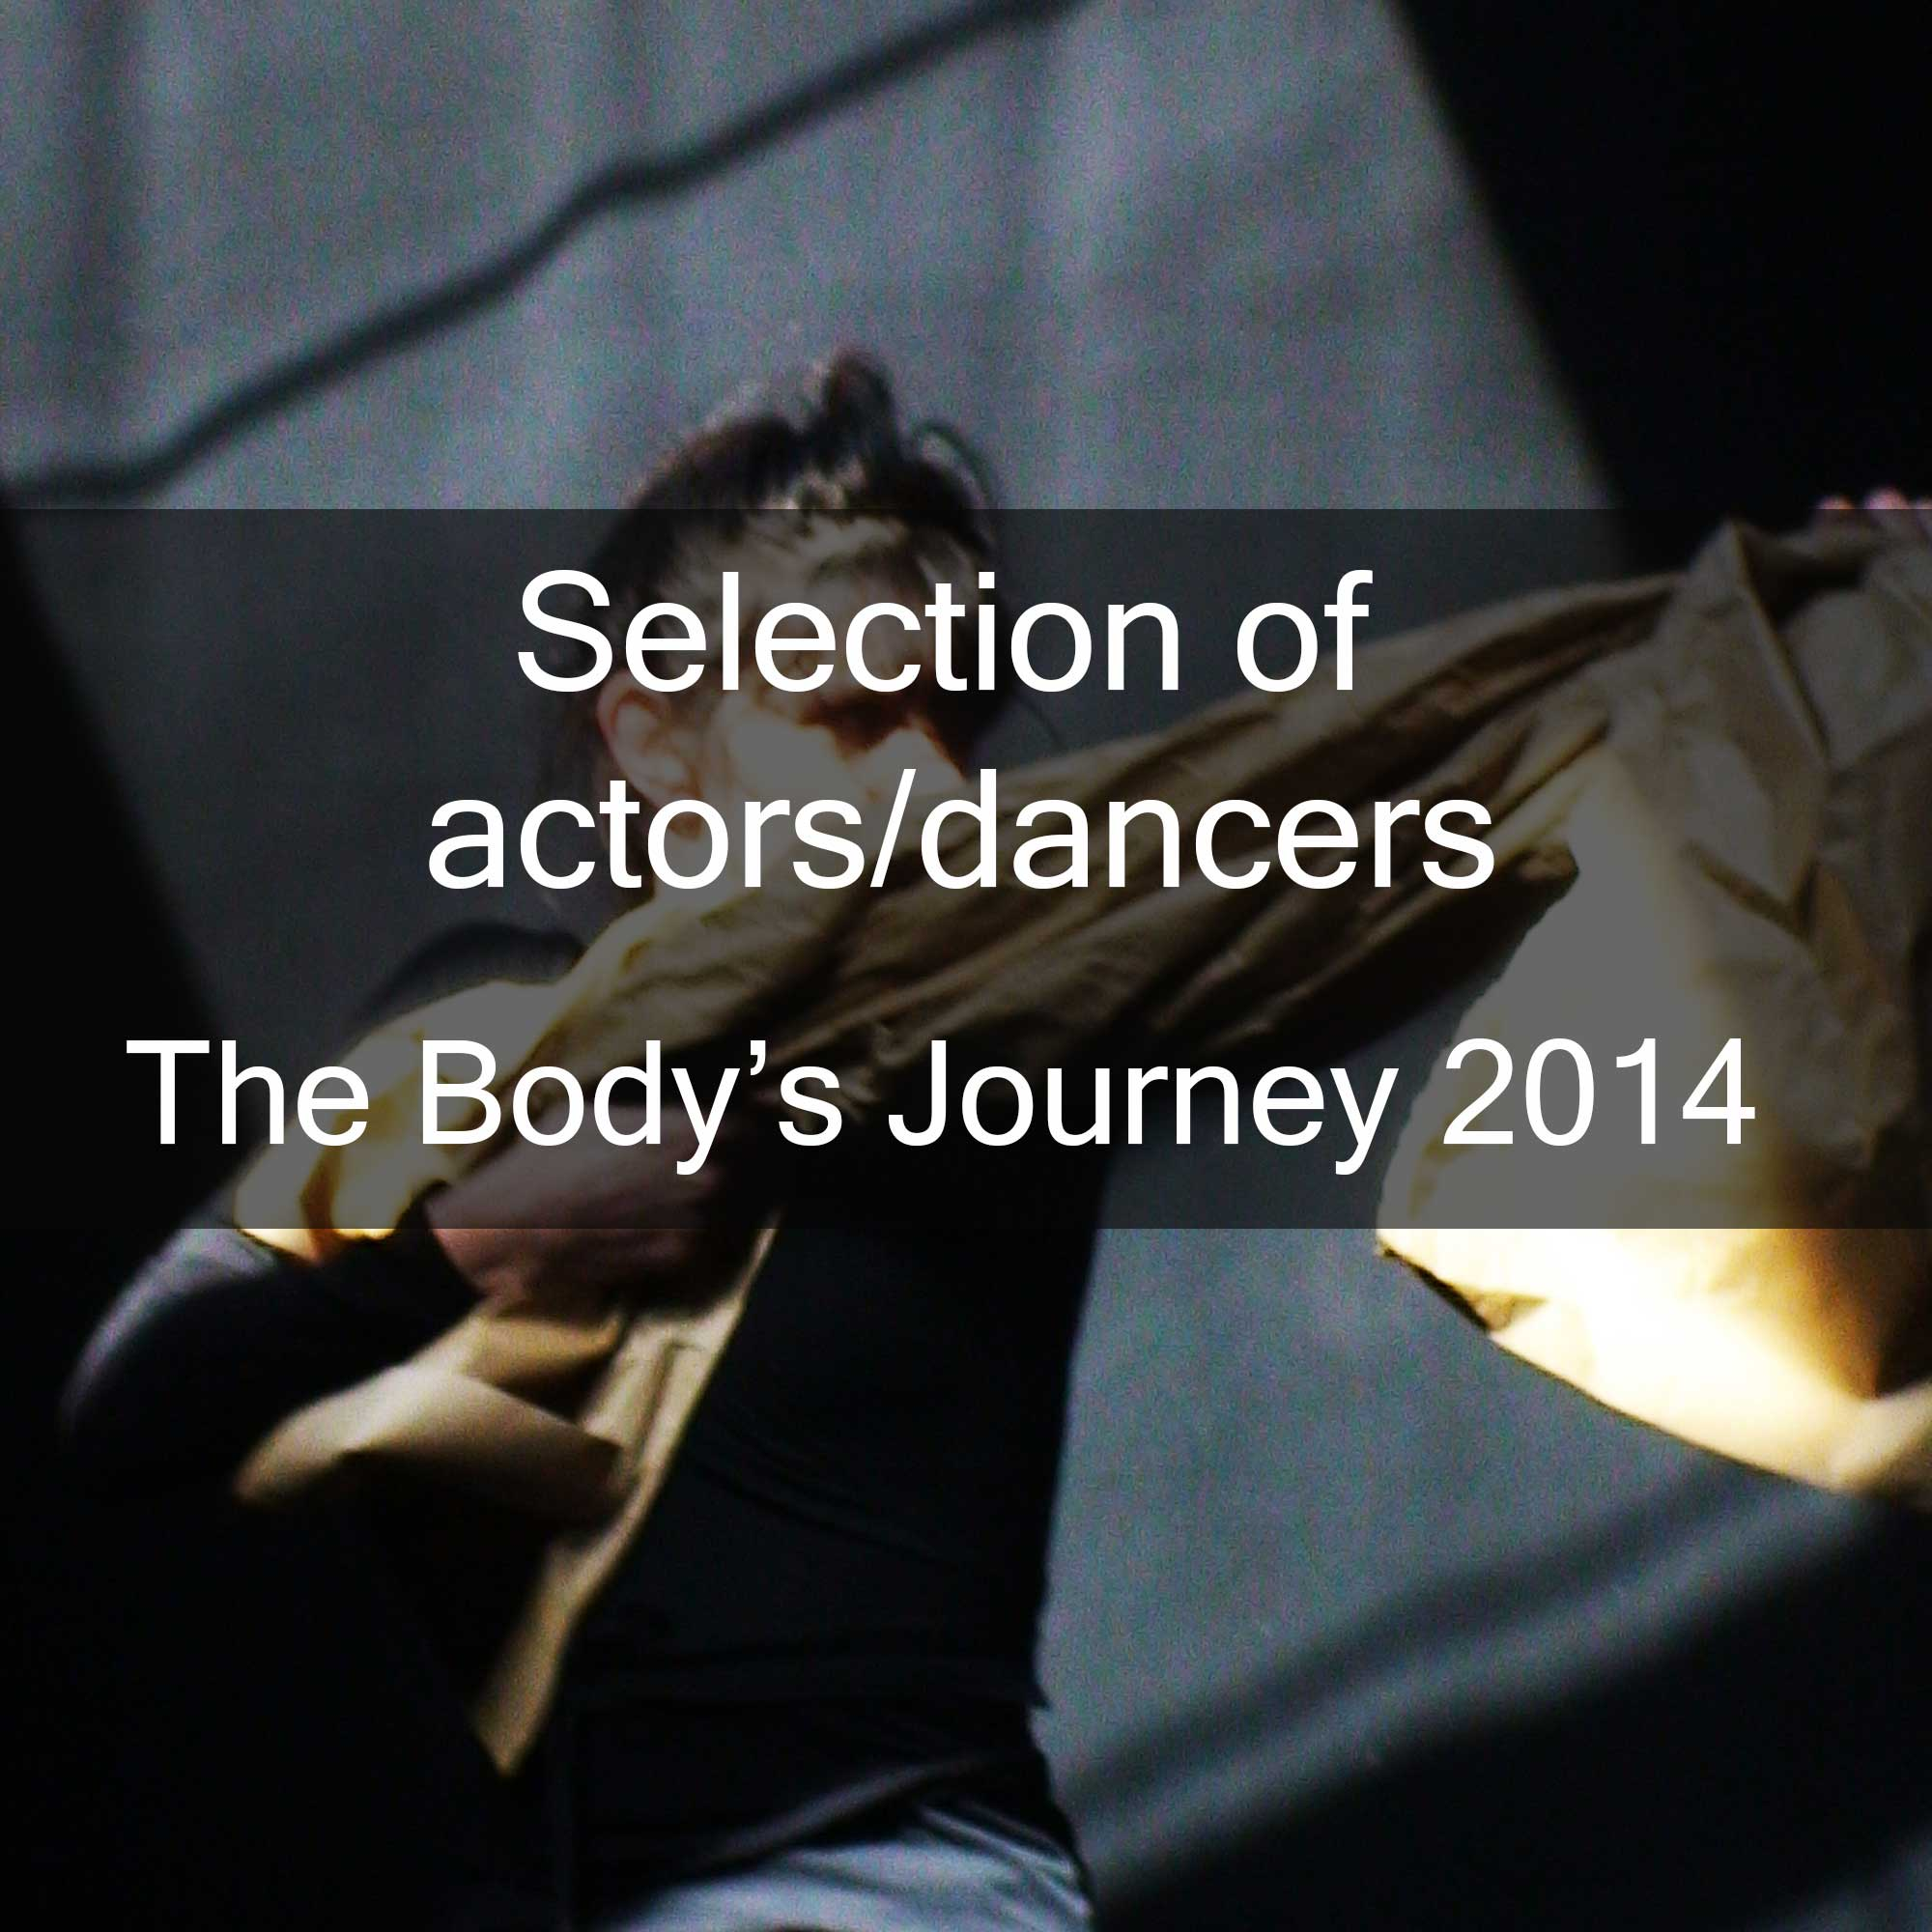 Selection of actors/dancers for The Body's Journey 2014